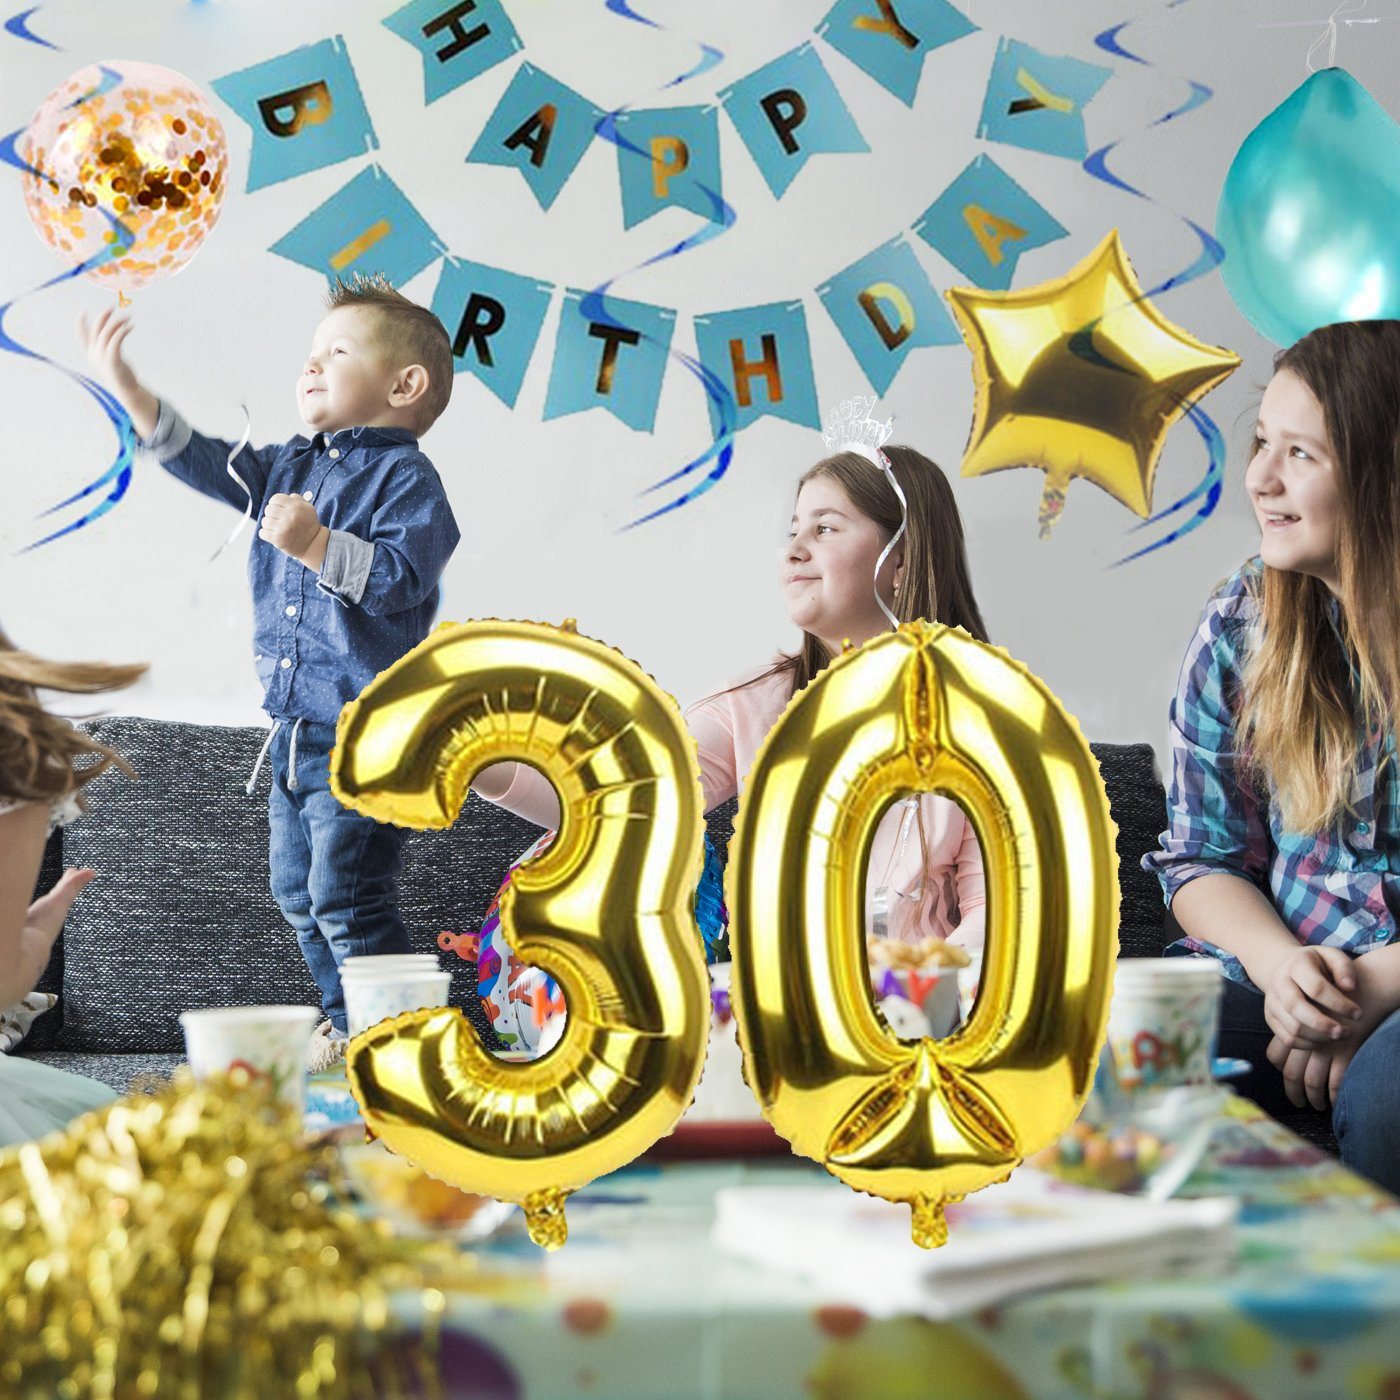 30th Birthday Party Decorations Kit Large Happy Banner Big 30 Gold Decor Foil Balloons For Him Or Her Dirty Thirty Bday Ideas Banners